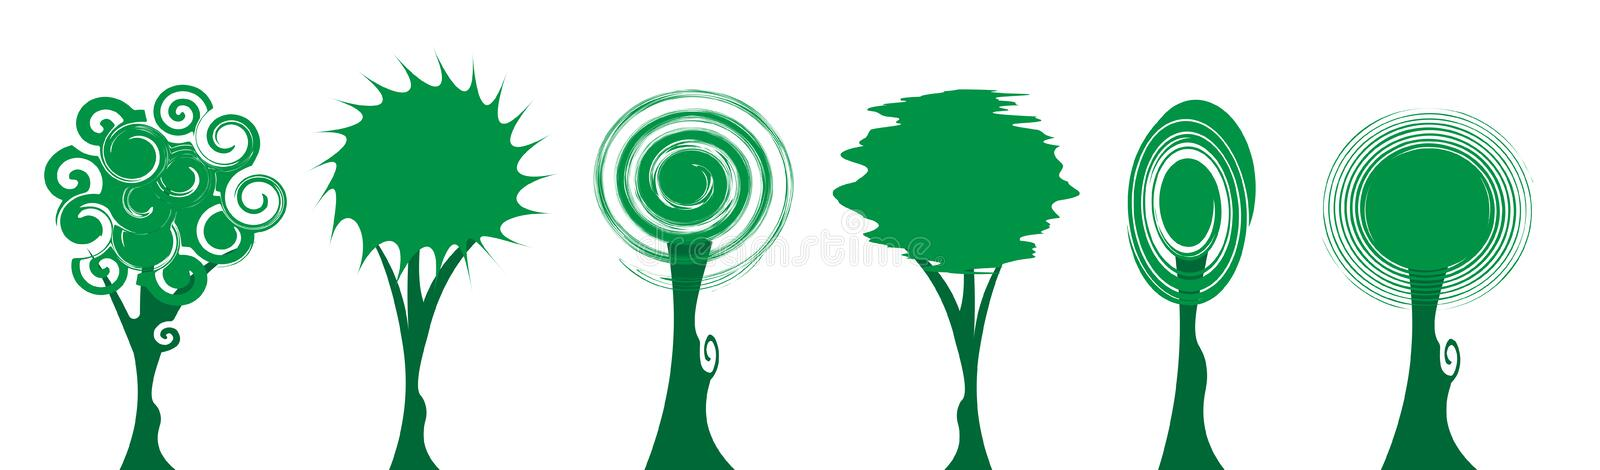 Set of green tree icons, Trees Education Logo Design, original green nature curly style, eco and bio badge, abstract organic icon 皇族释放例证